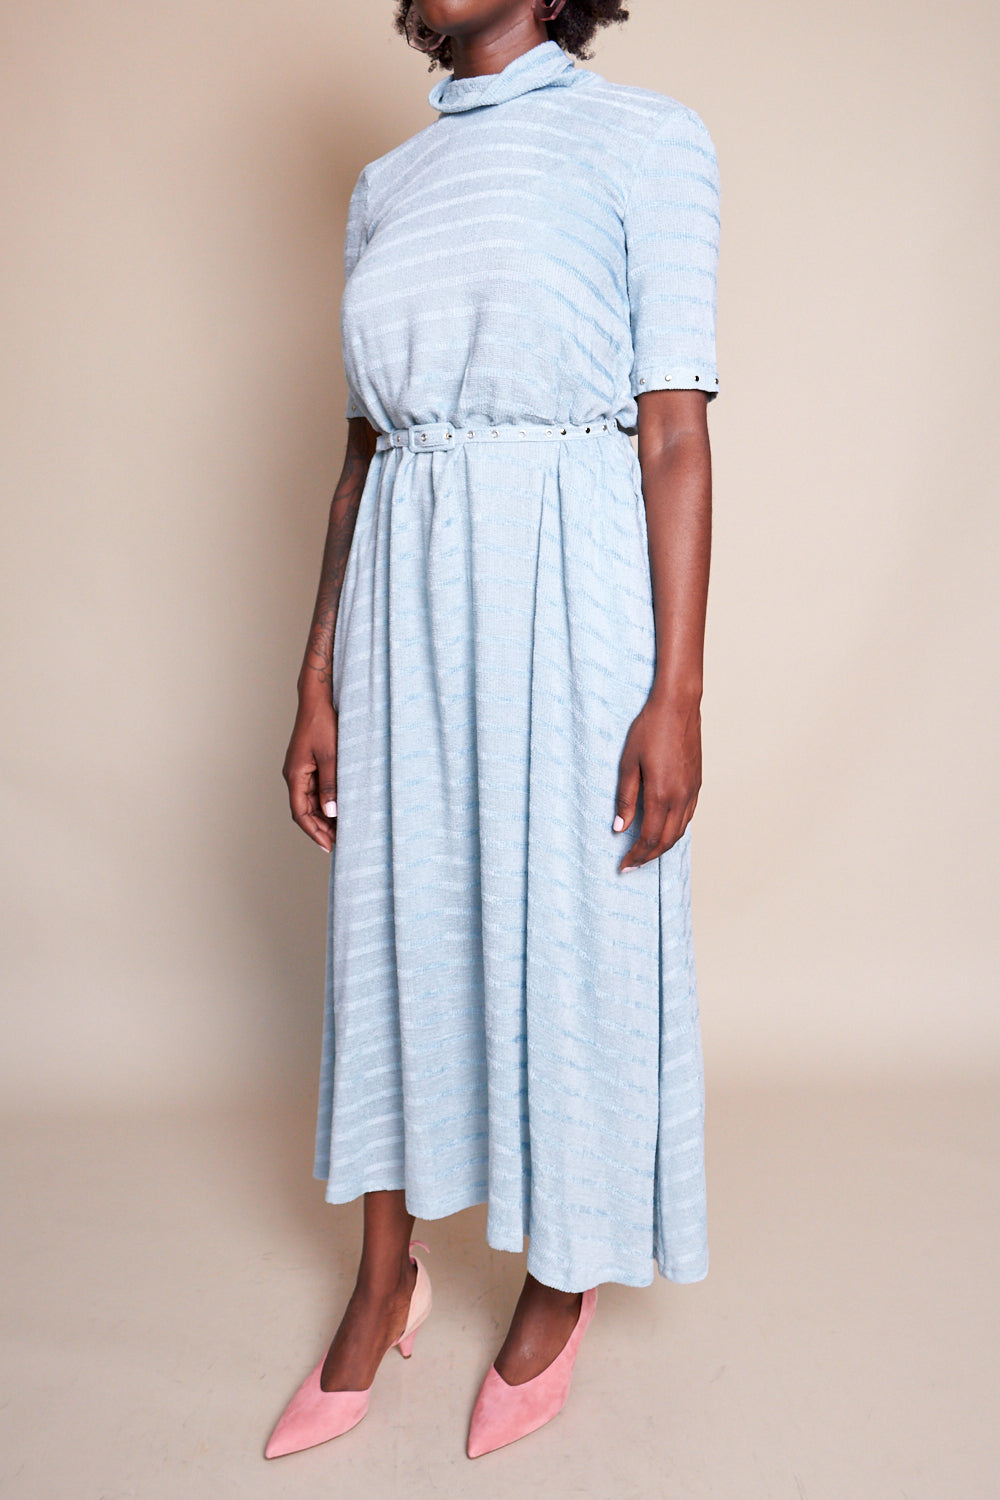 Rachel Comey Sola Dress in Seafoam - Vert & Vogue